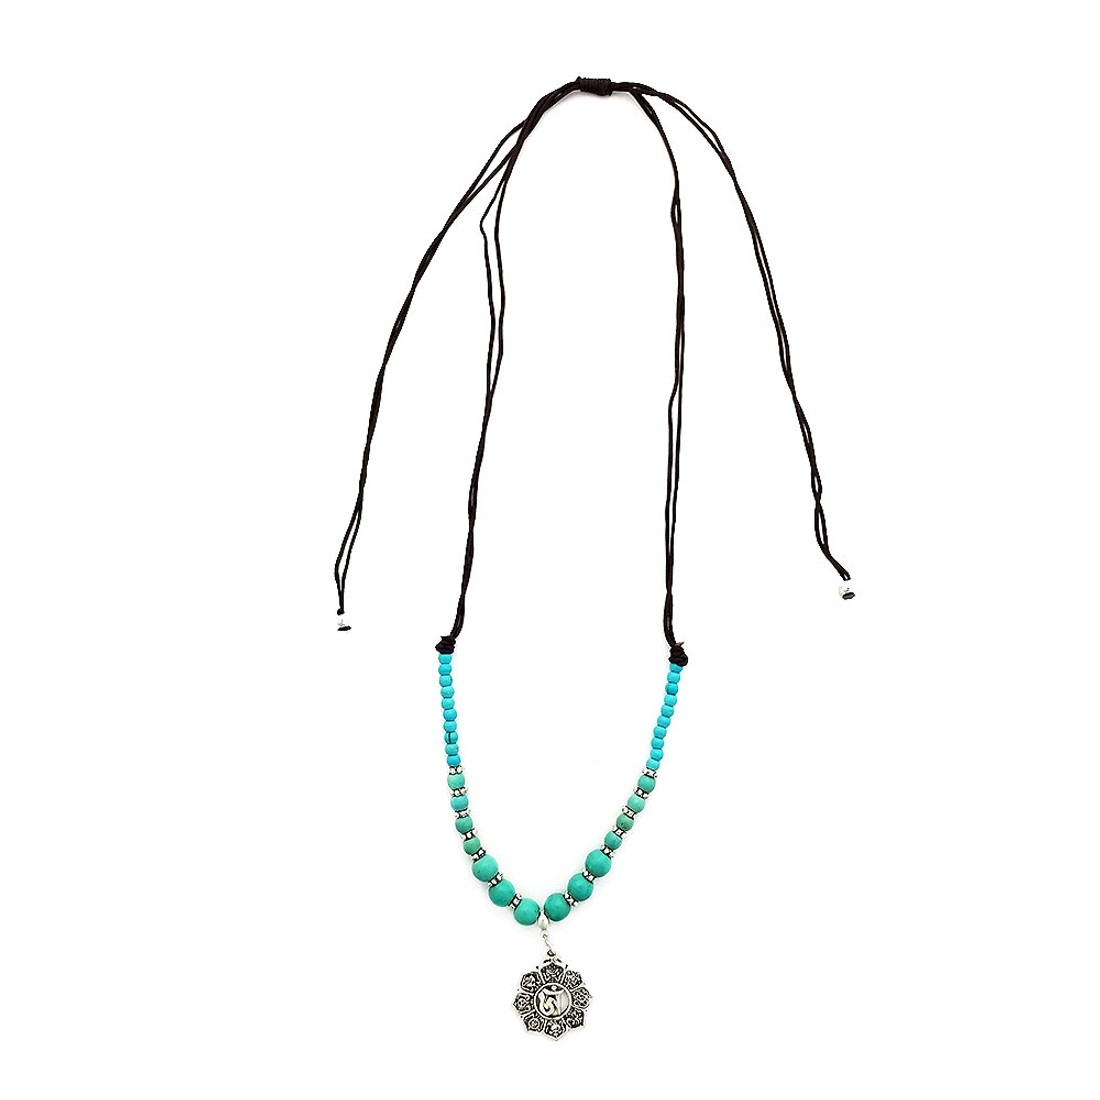 Mandala alloy and turquoise Howlite beaded necklace.